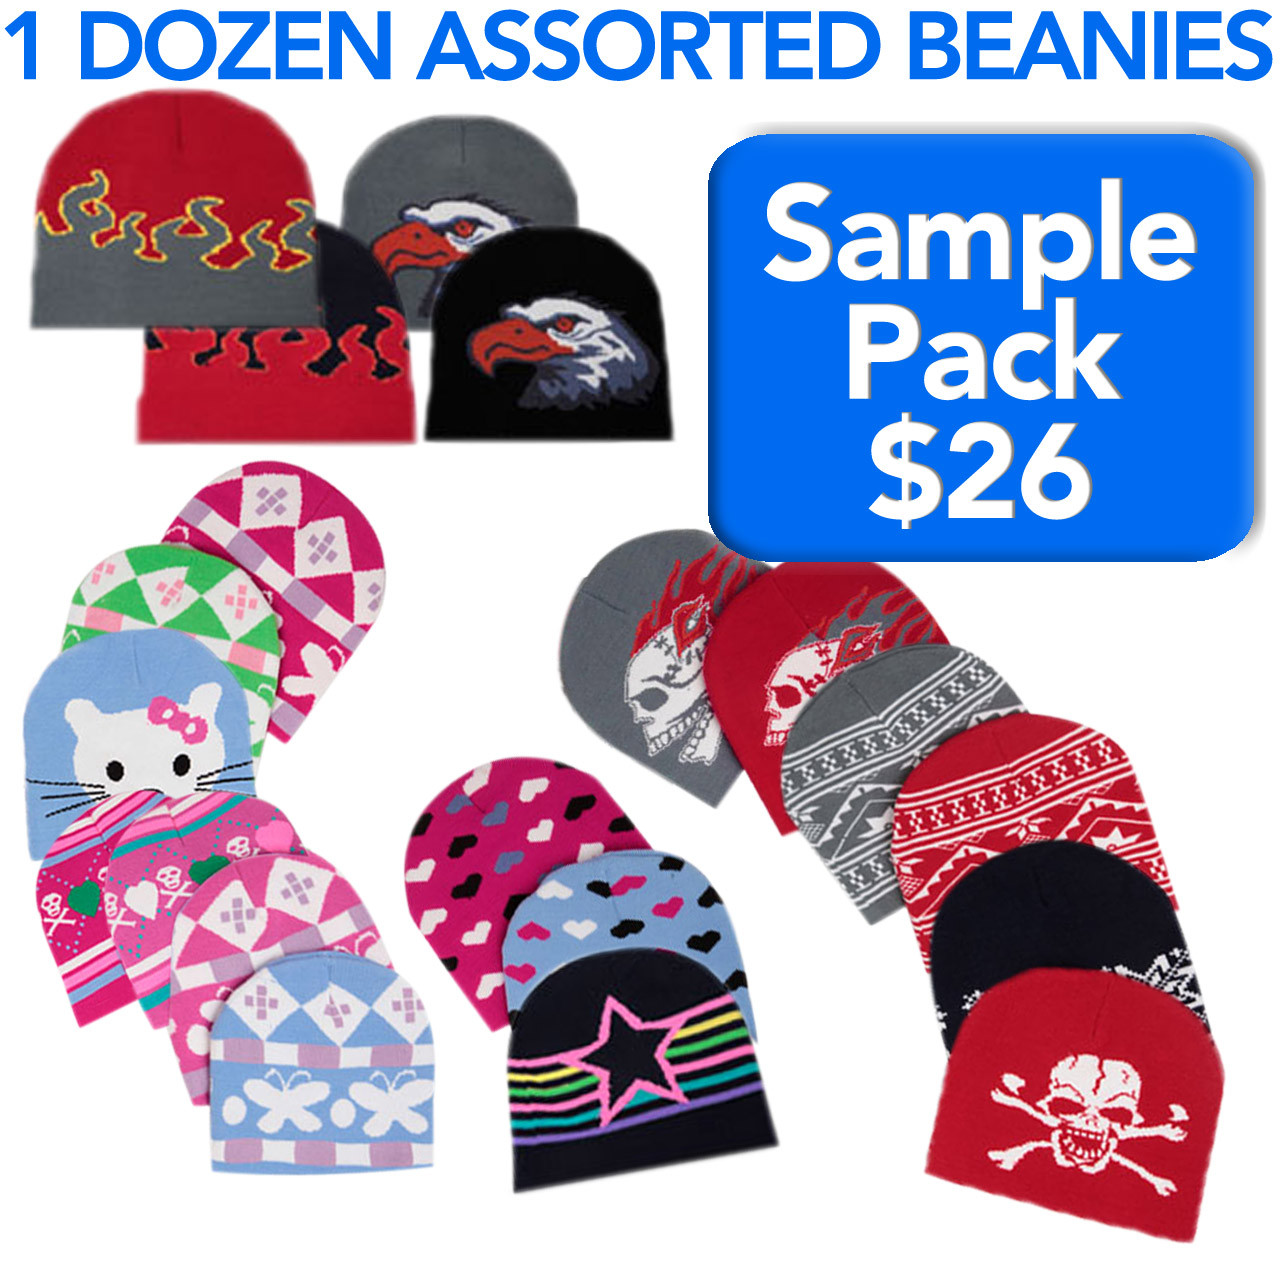 Wholesale Beanies Sample Pack BSP1 (12 pcs.) One Dozen Assorted Beanies